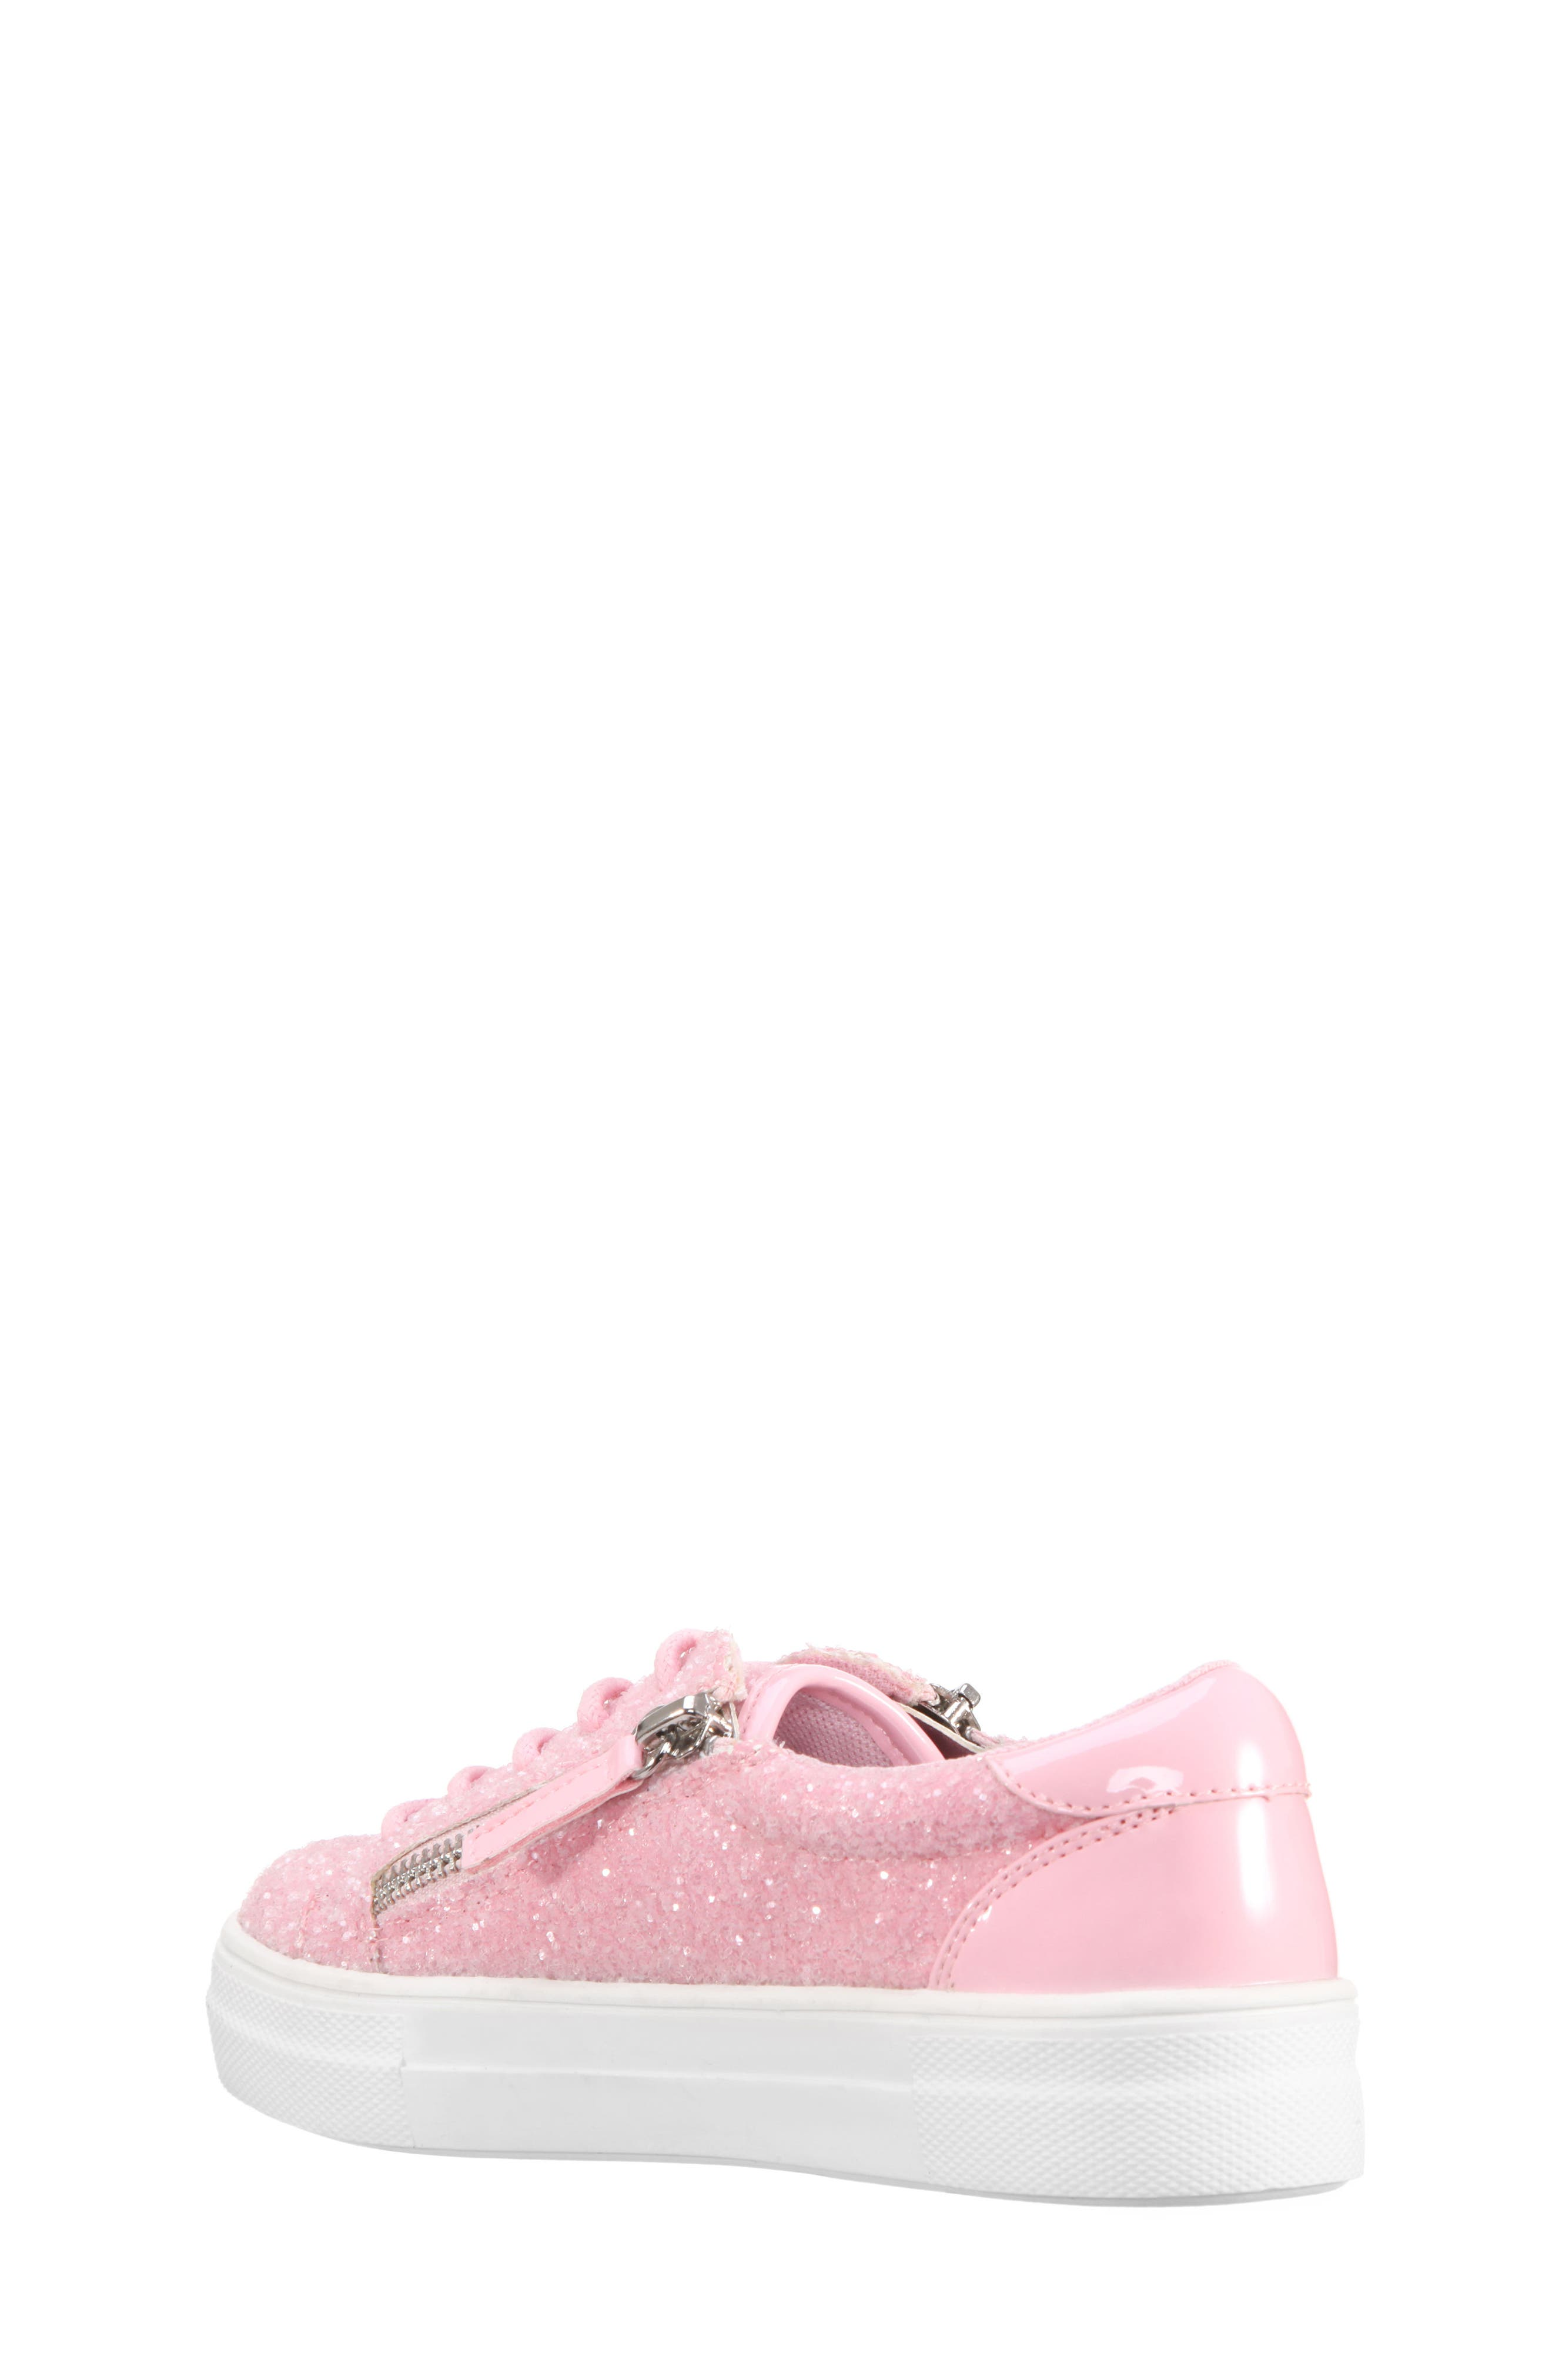 Jennalyn Glitter Sneaker,                             Alternate thumbnail 2, color,                             Light Pink Chunky Glitter